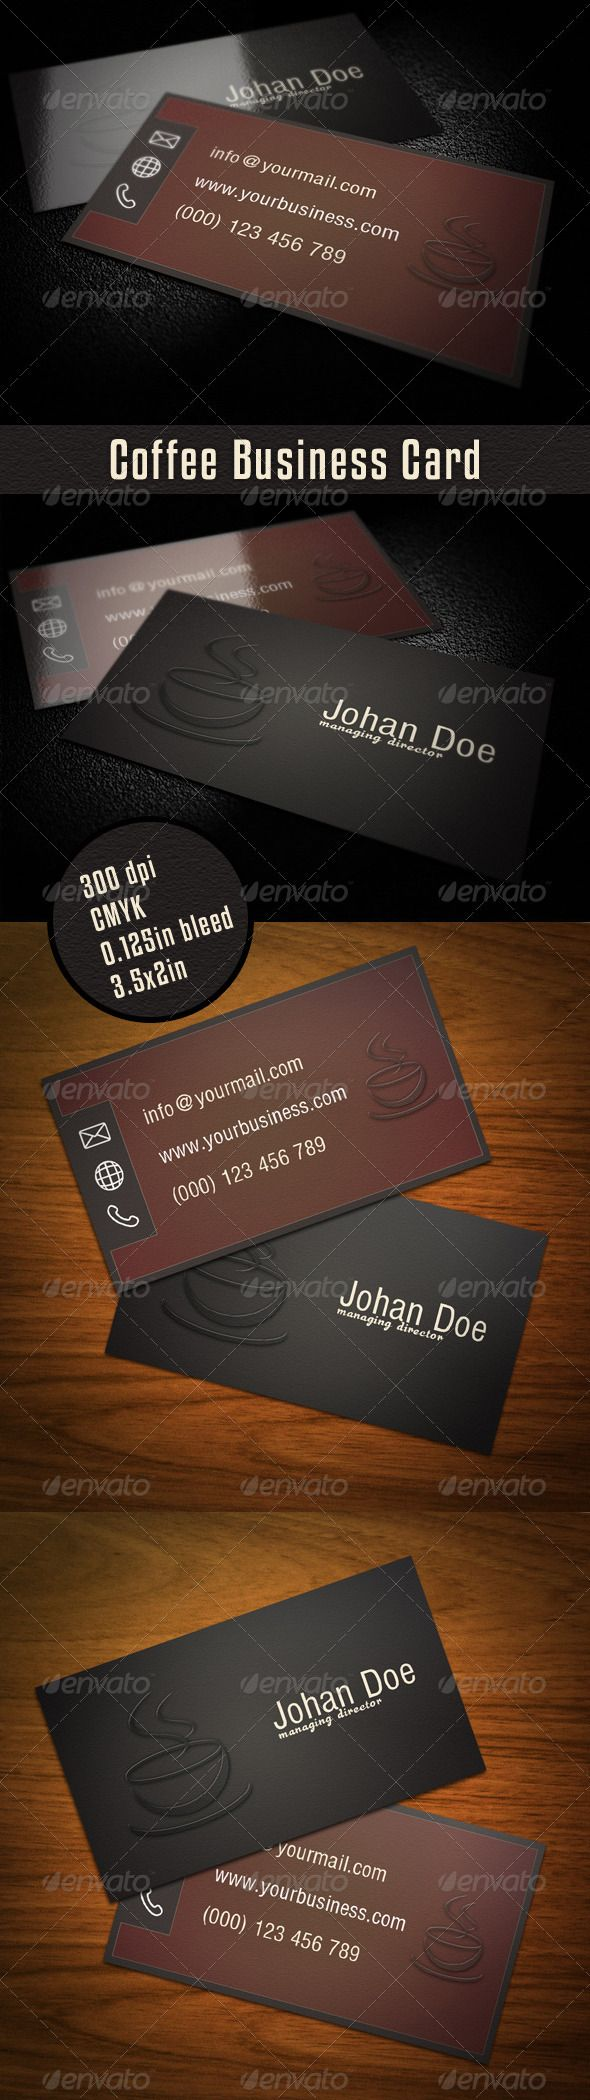 648 best Cool Business Cards images on Pinterest | Fonts, Arrows ...